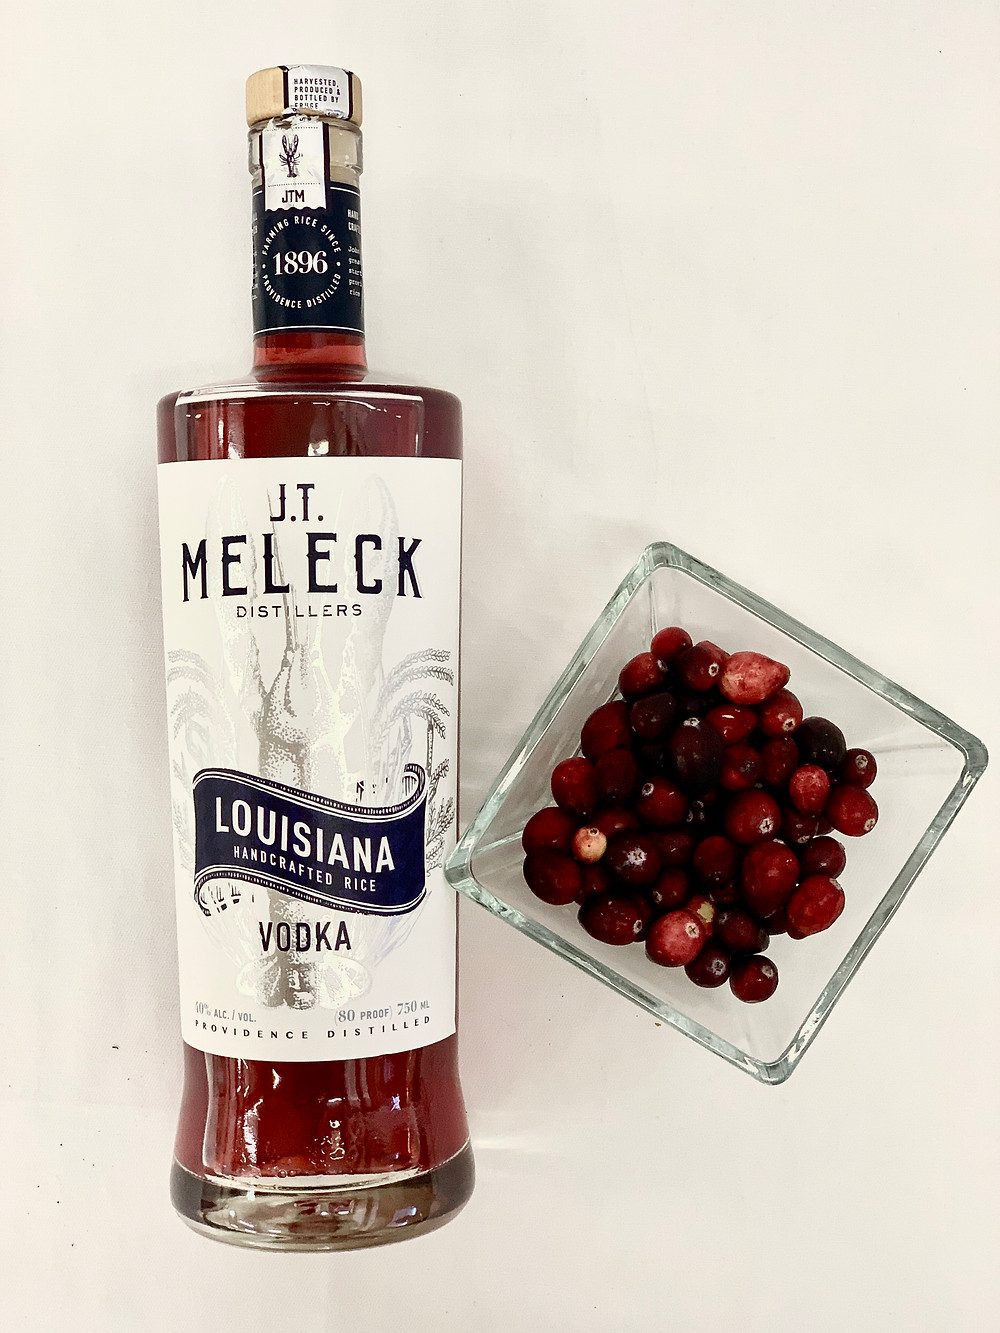 JT Meleck Vodka infused with cranberries